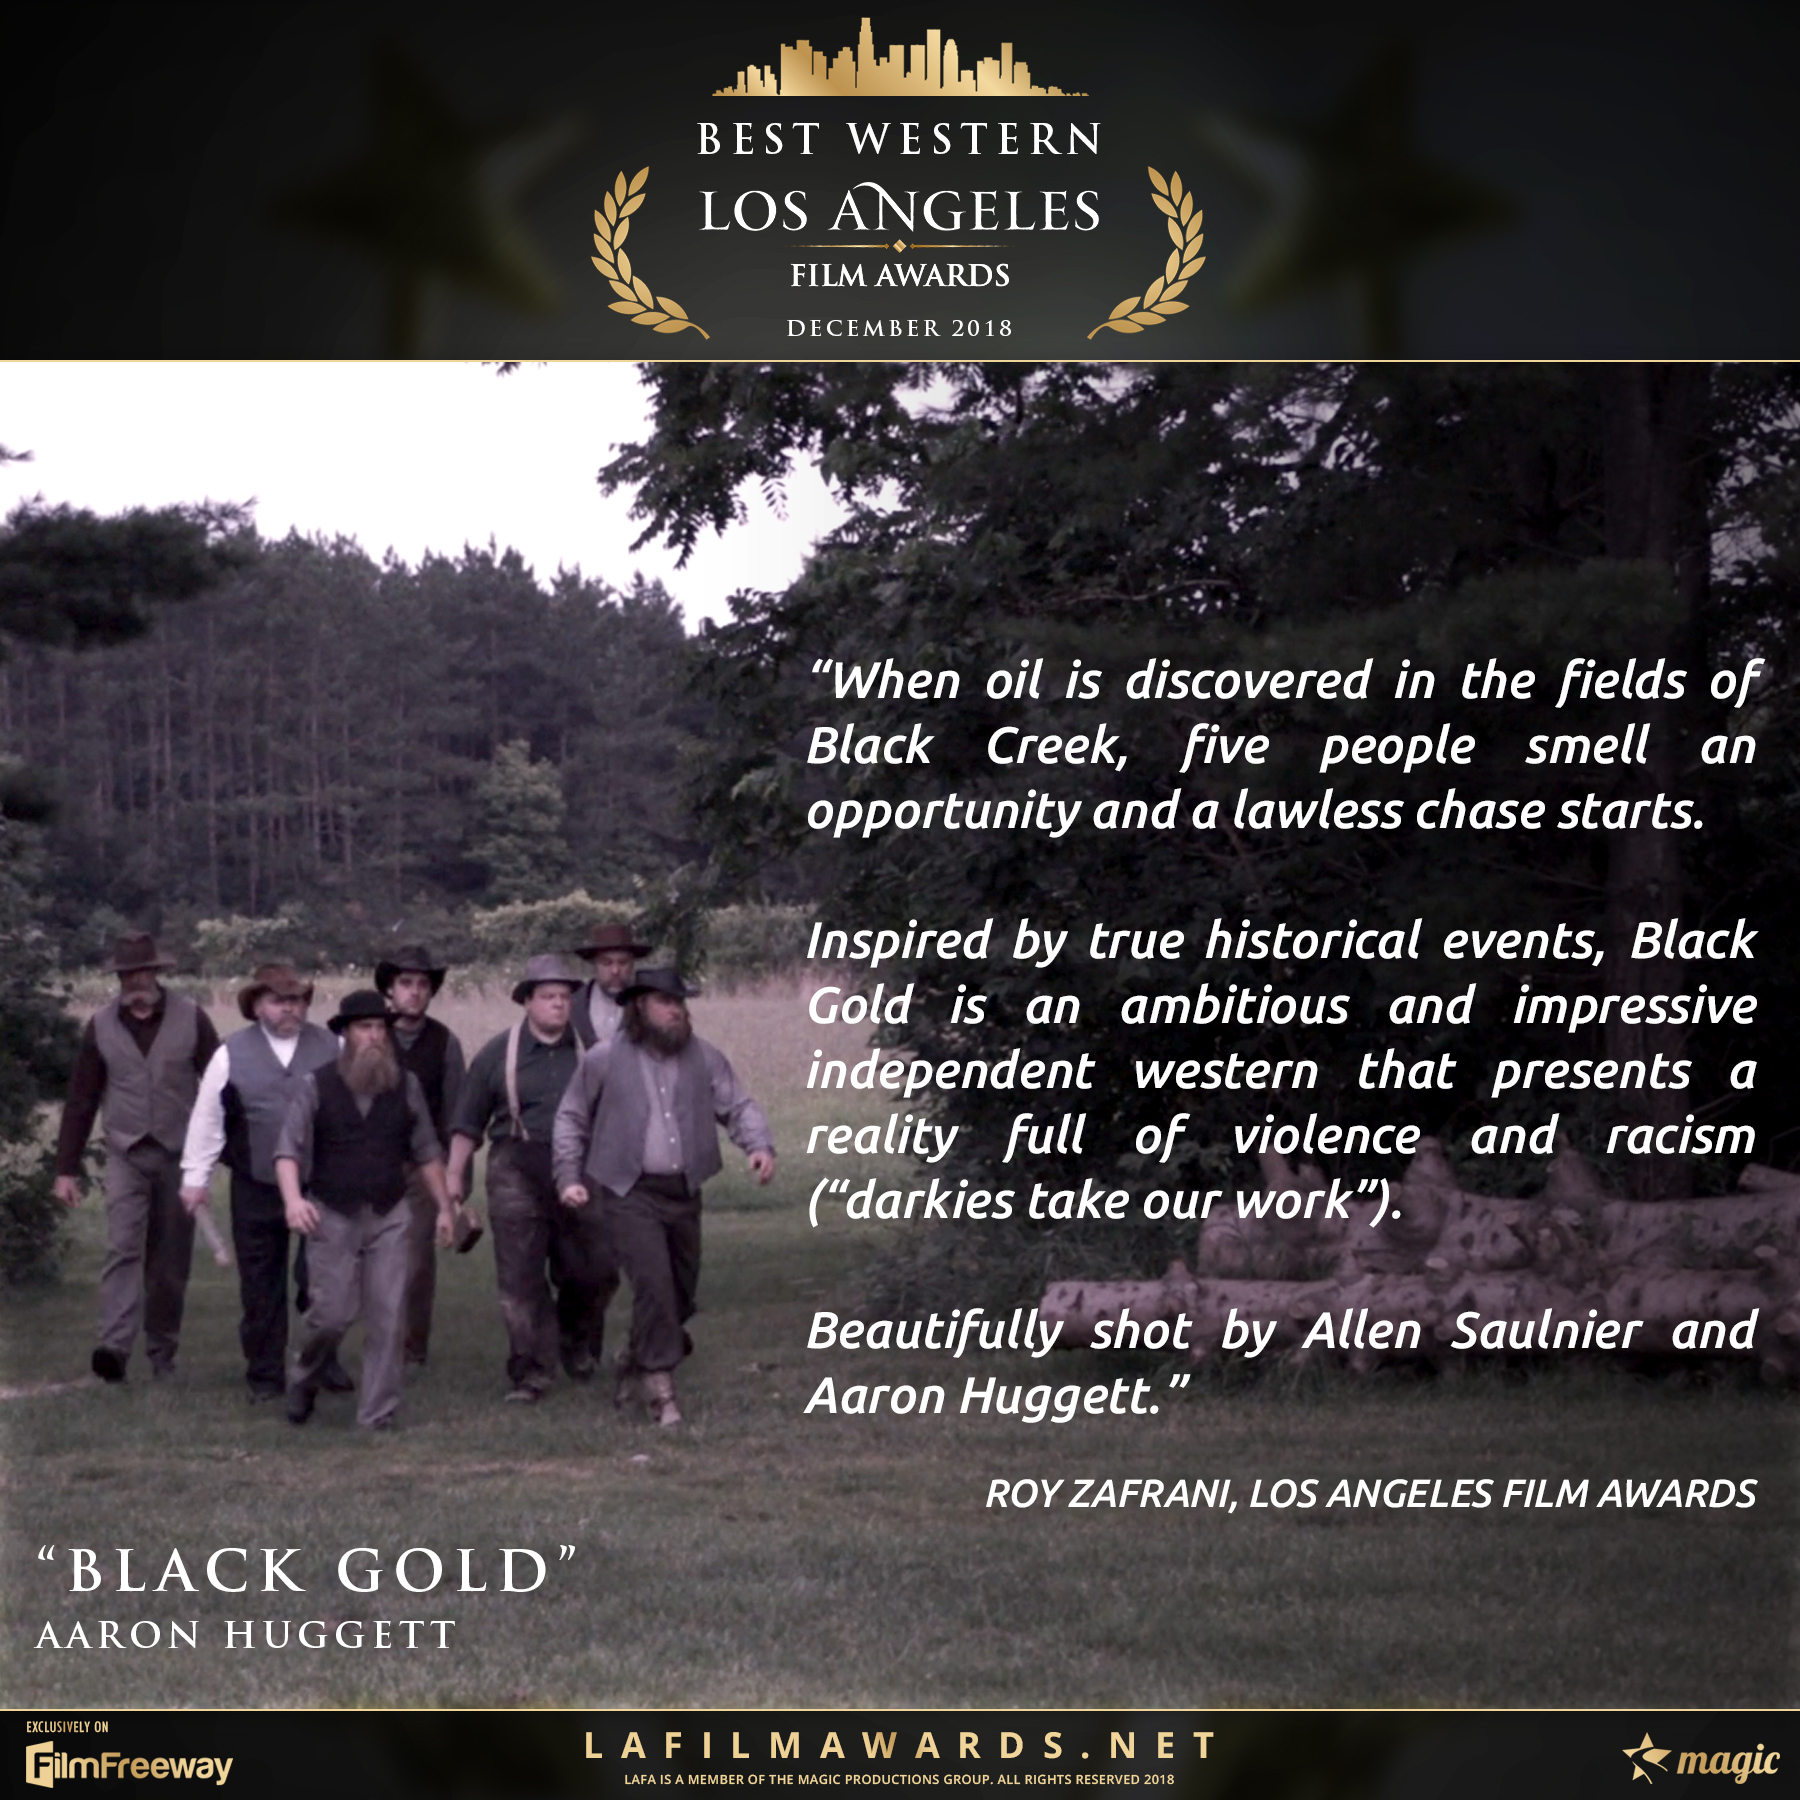 BLACK GOLD - Review